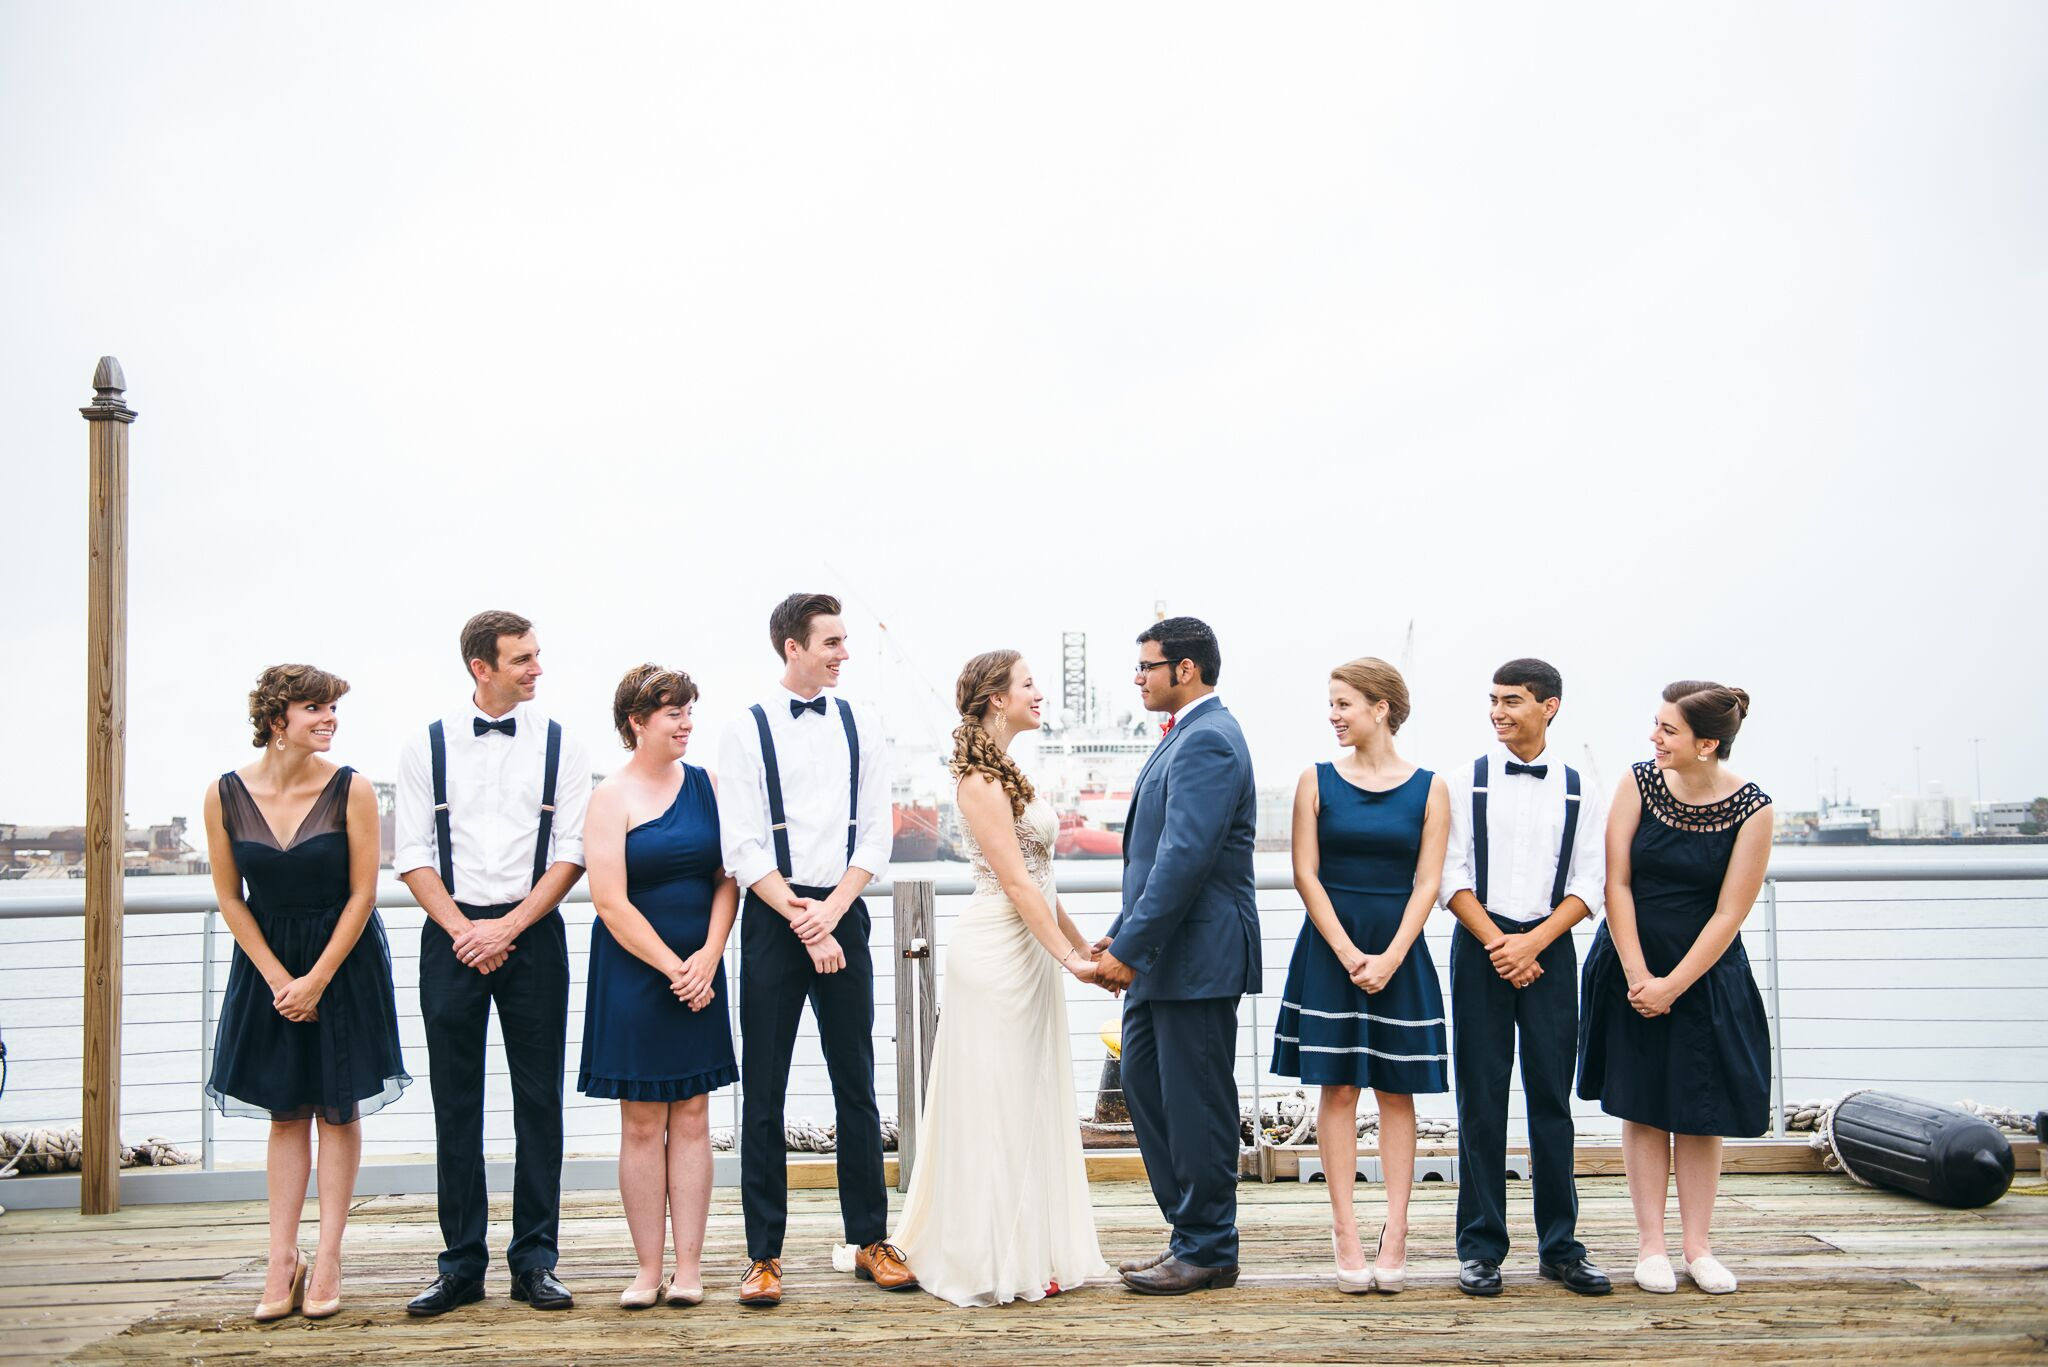 A nautical wedding at the texas seaport museum in galveston texas 37705338 124d 11e4 843f 22000aa61a3ers 729 ombrellifo Images